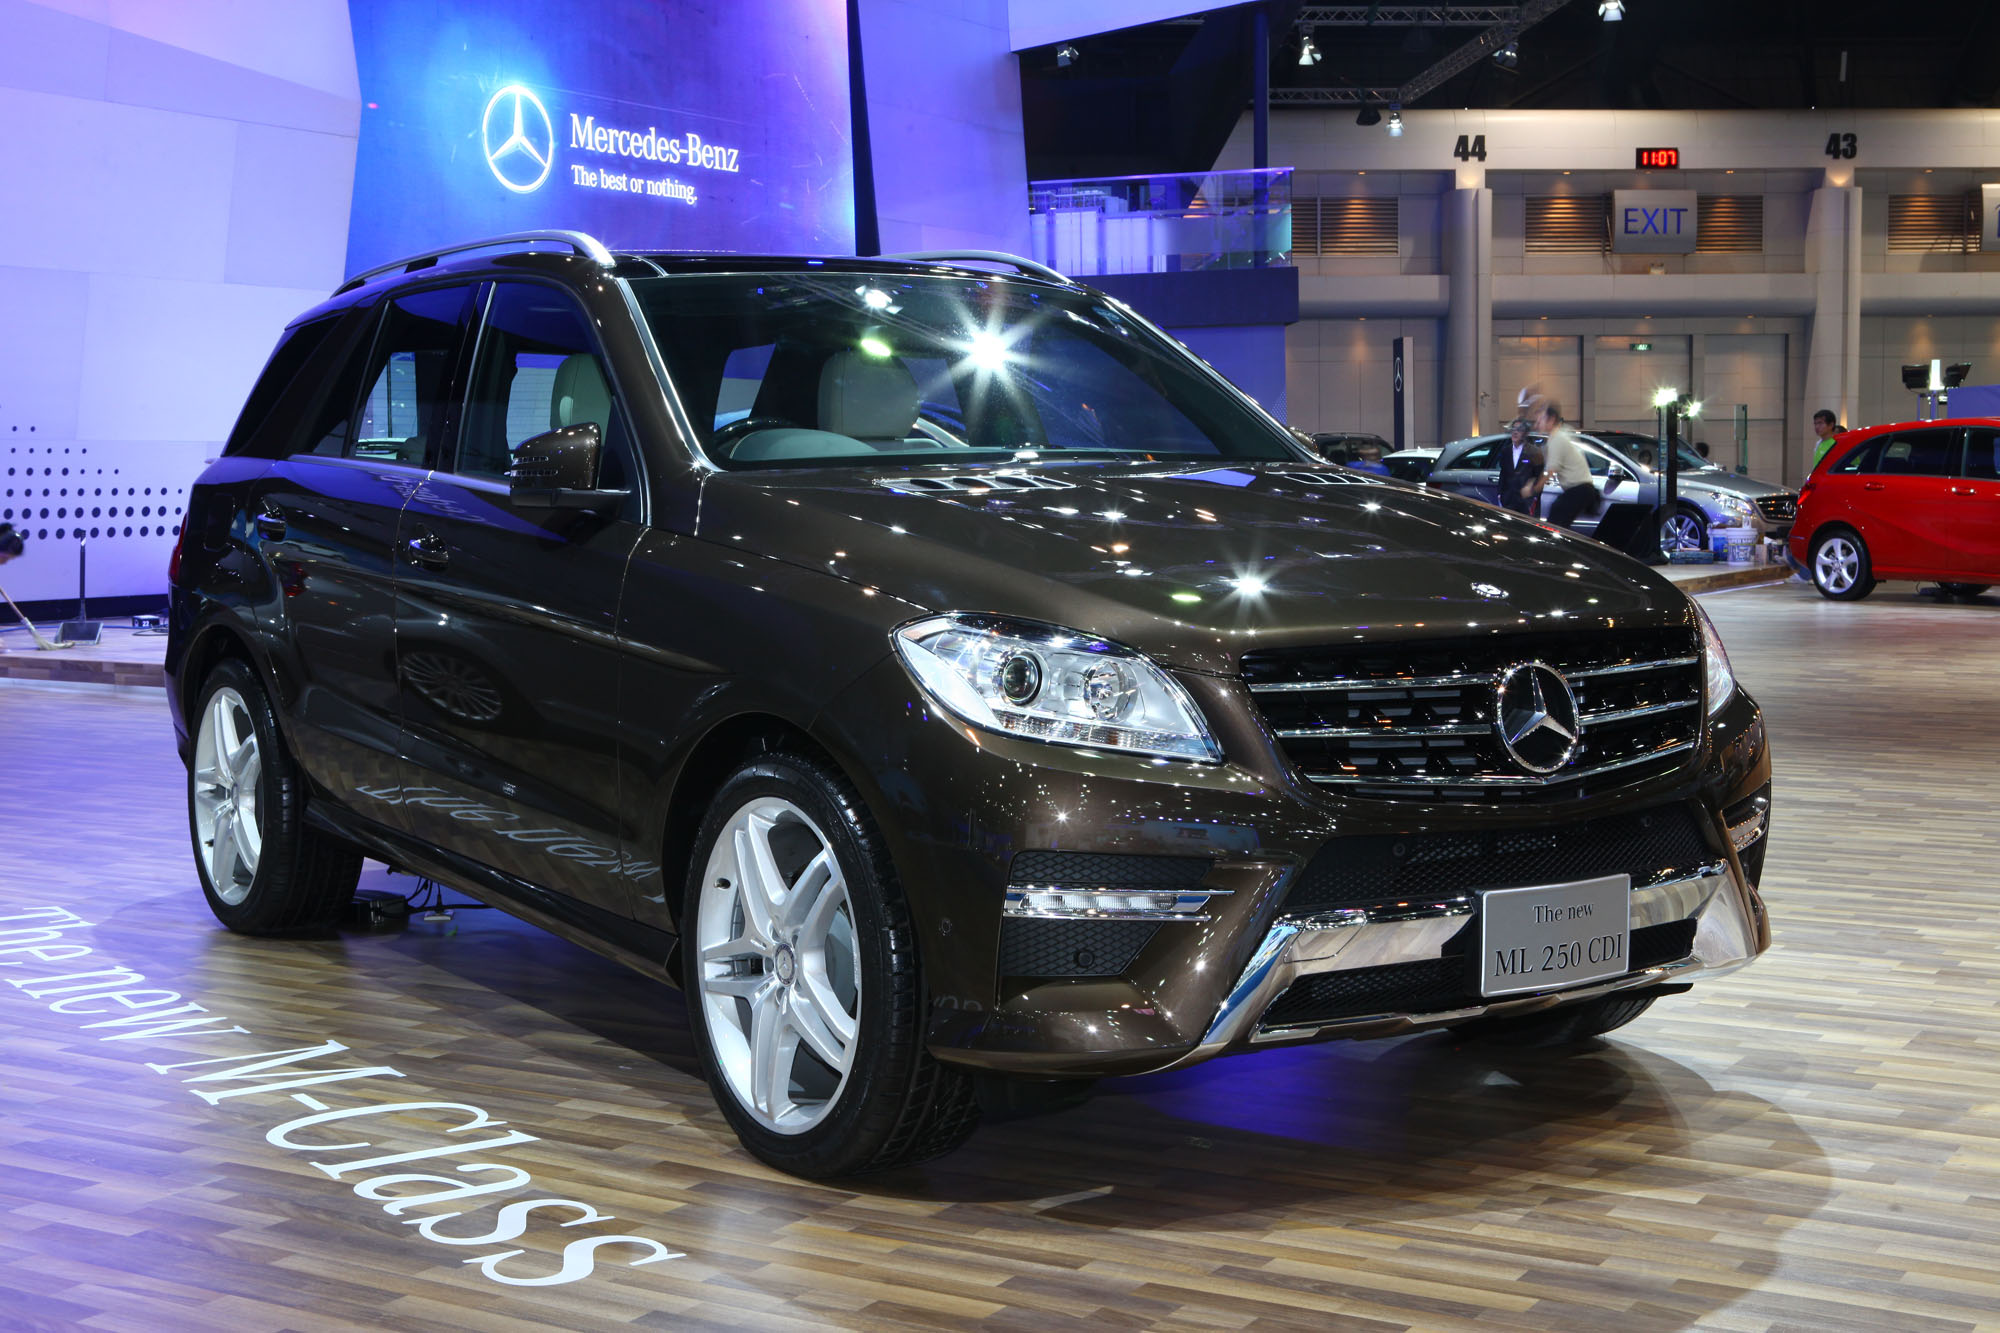 mercedes benz ml 250 technical details history photos on better parts ltd. Black Bedroom Furniture Sets. Home Design Ideas